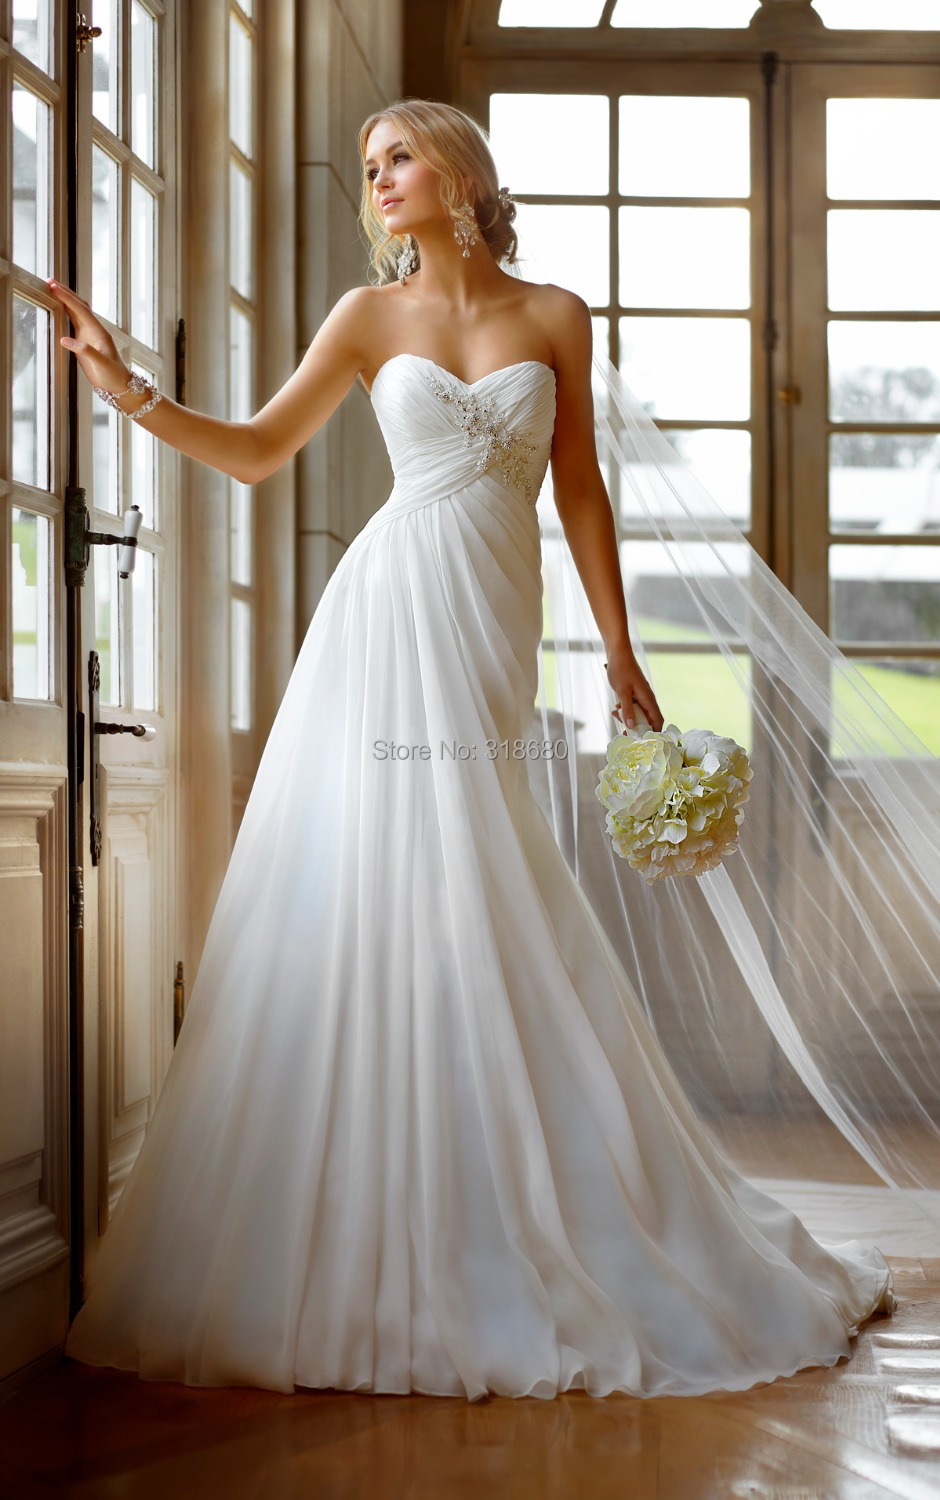 who buys wedding dresses beach wedding dresses cheap cheap aline hi lo beach wedding dresses best reference images spring summer beach